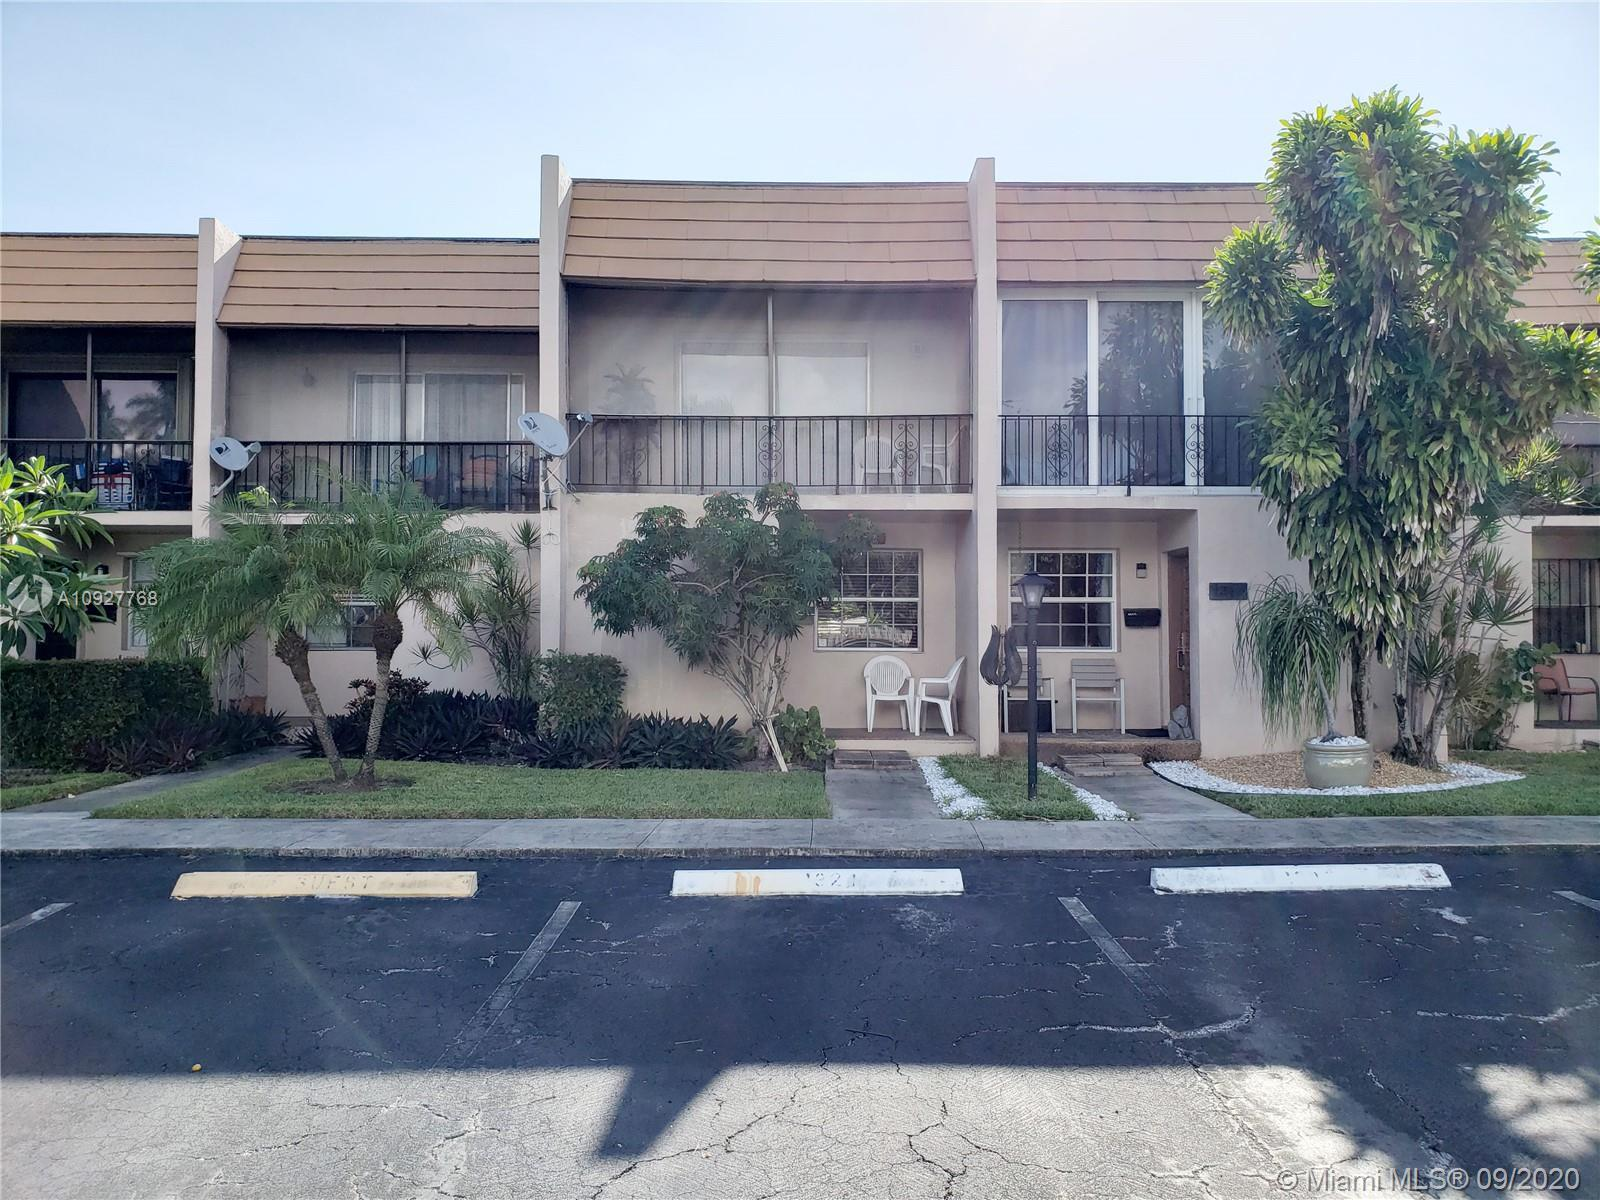 RARE OPPORTUNITY! Beautiful Townhouse 2 Bed and 2.5 Bath for sale East of US1 in the heart of Hollyw